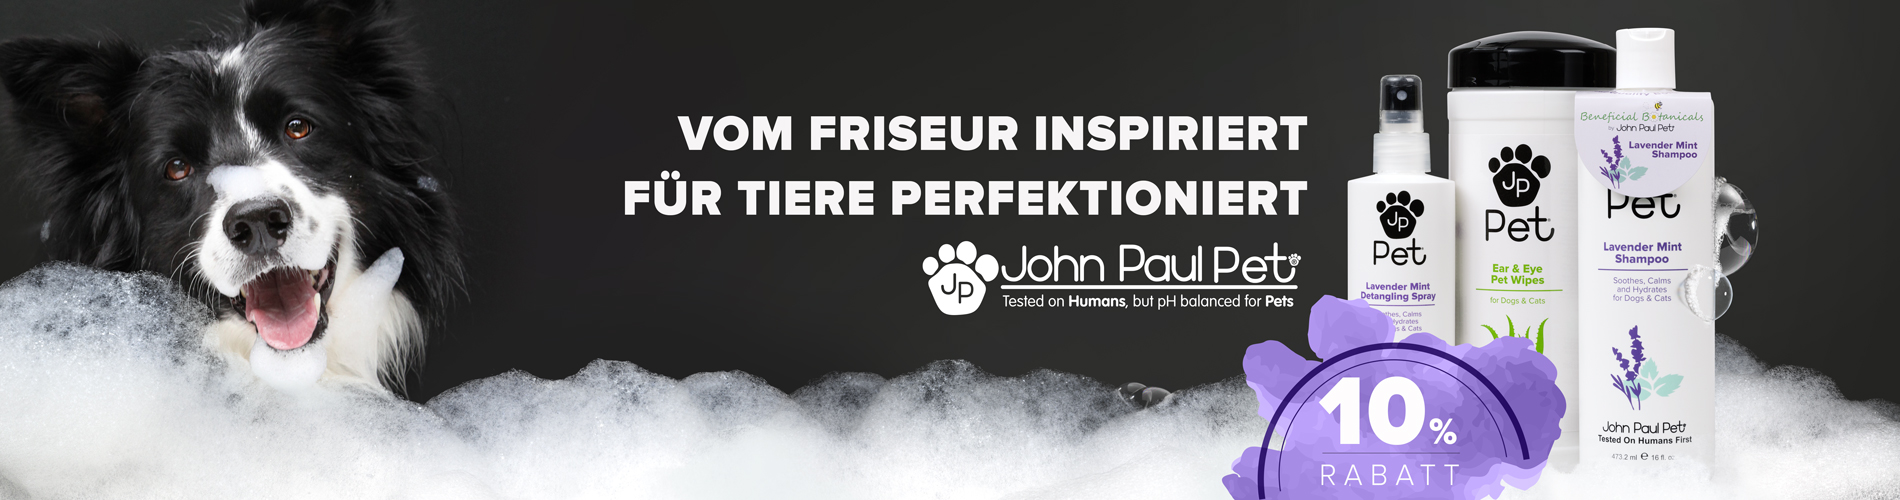 Jean Paul Pet Image Banner